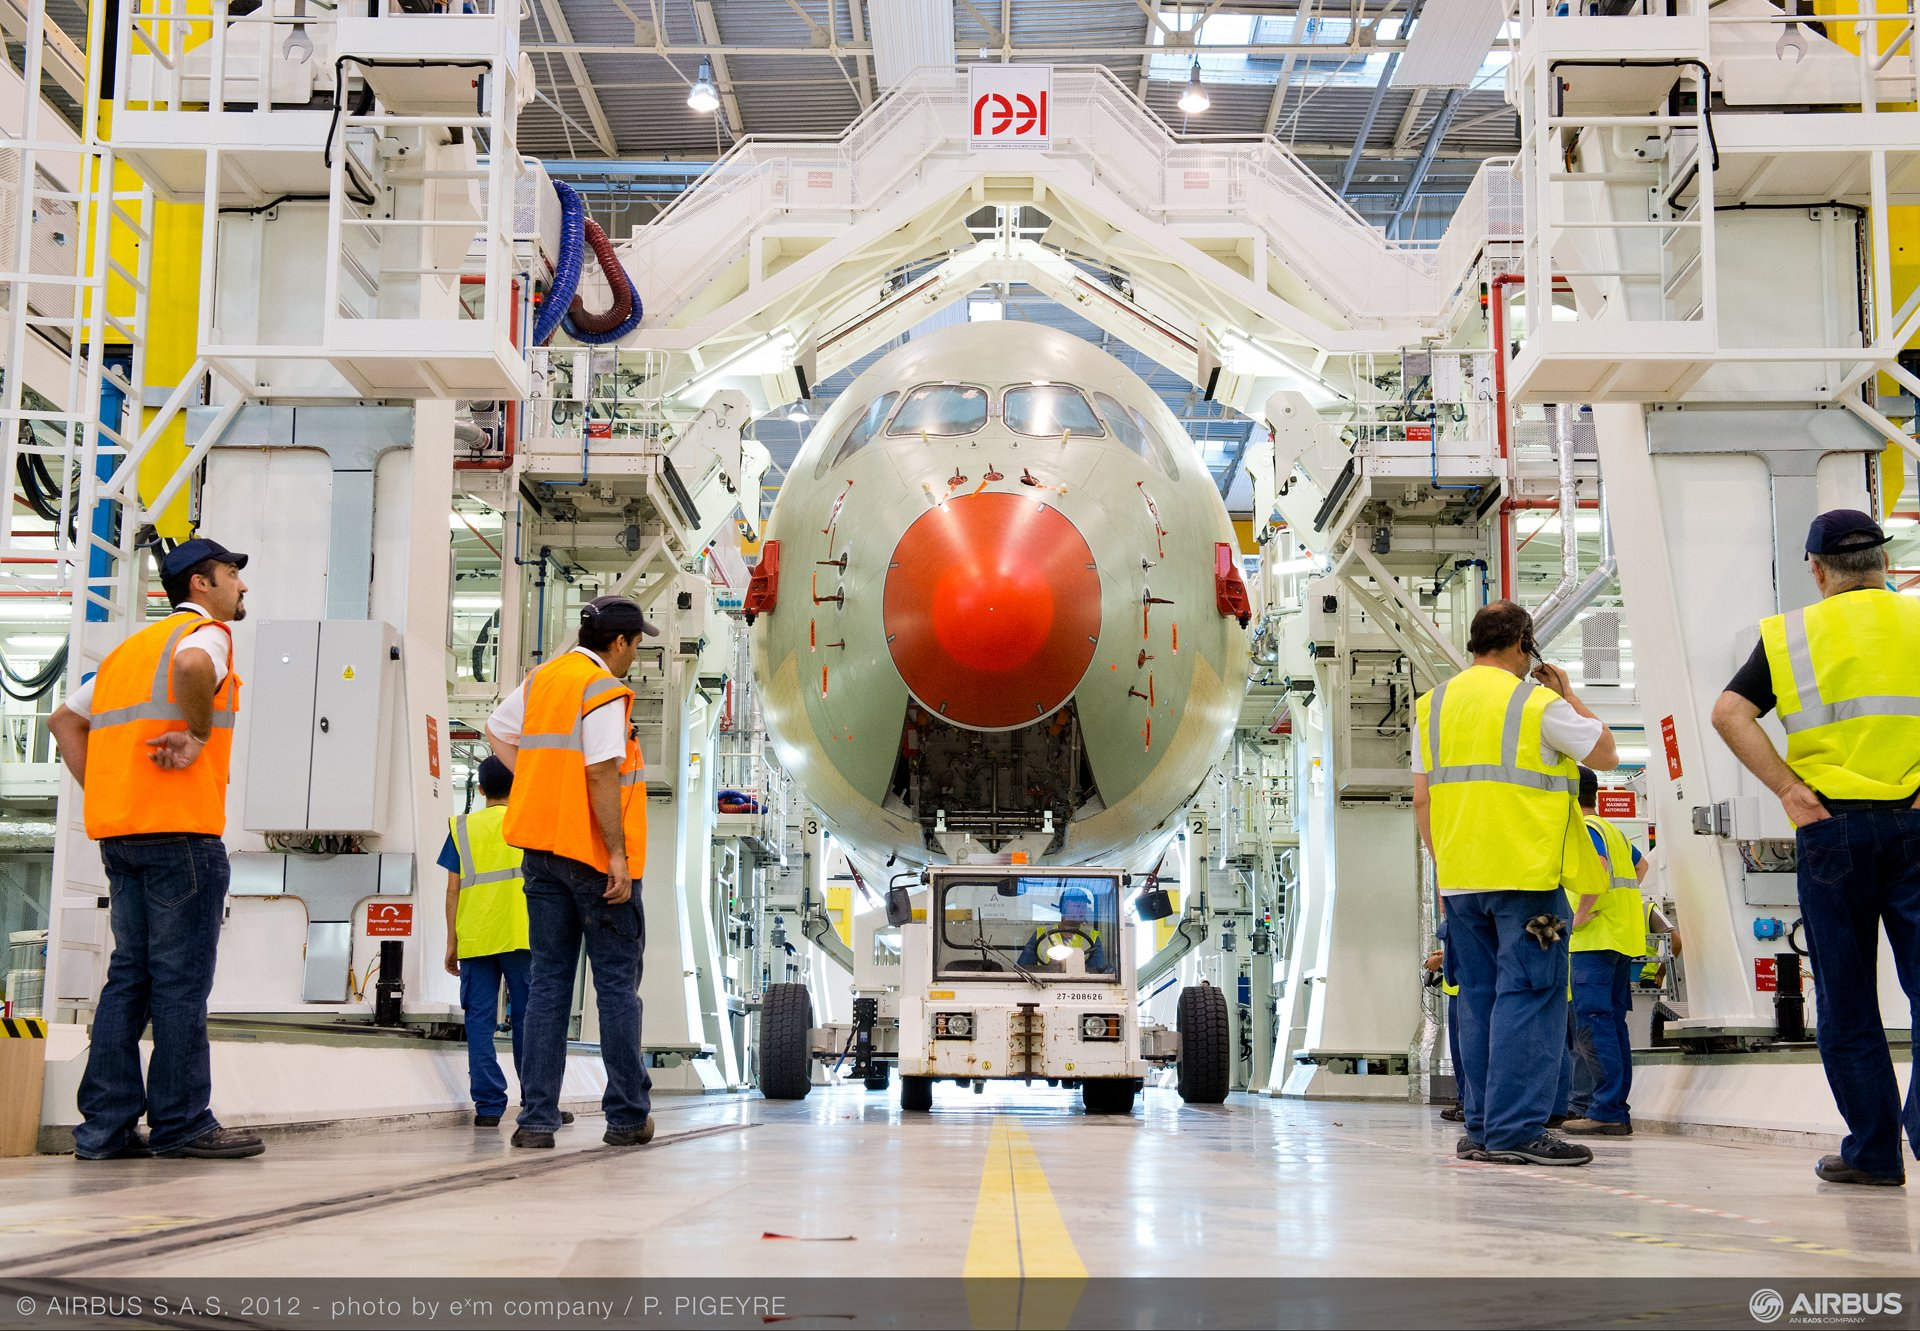 The nose section of Airbus' first A350 XWB to fly is transported to the Station 50 fuselage join-up position of the purpose-built final assembly line at Toulouse, France.